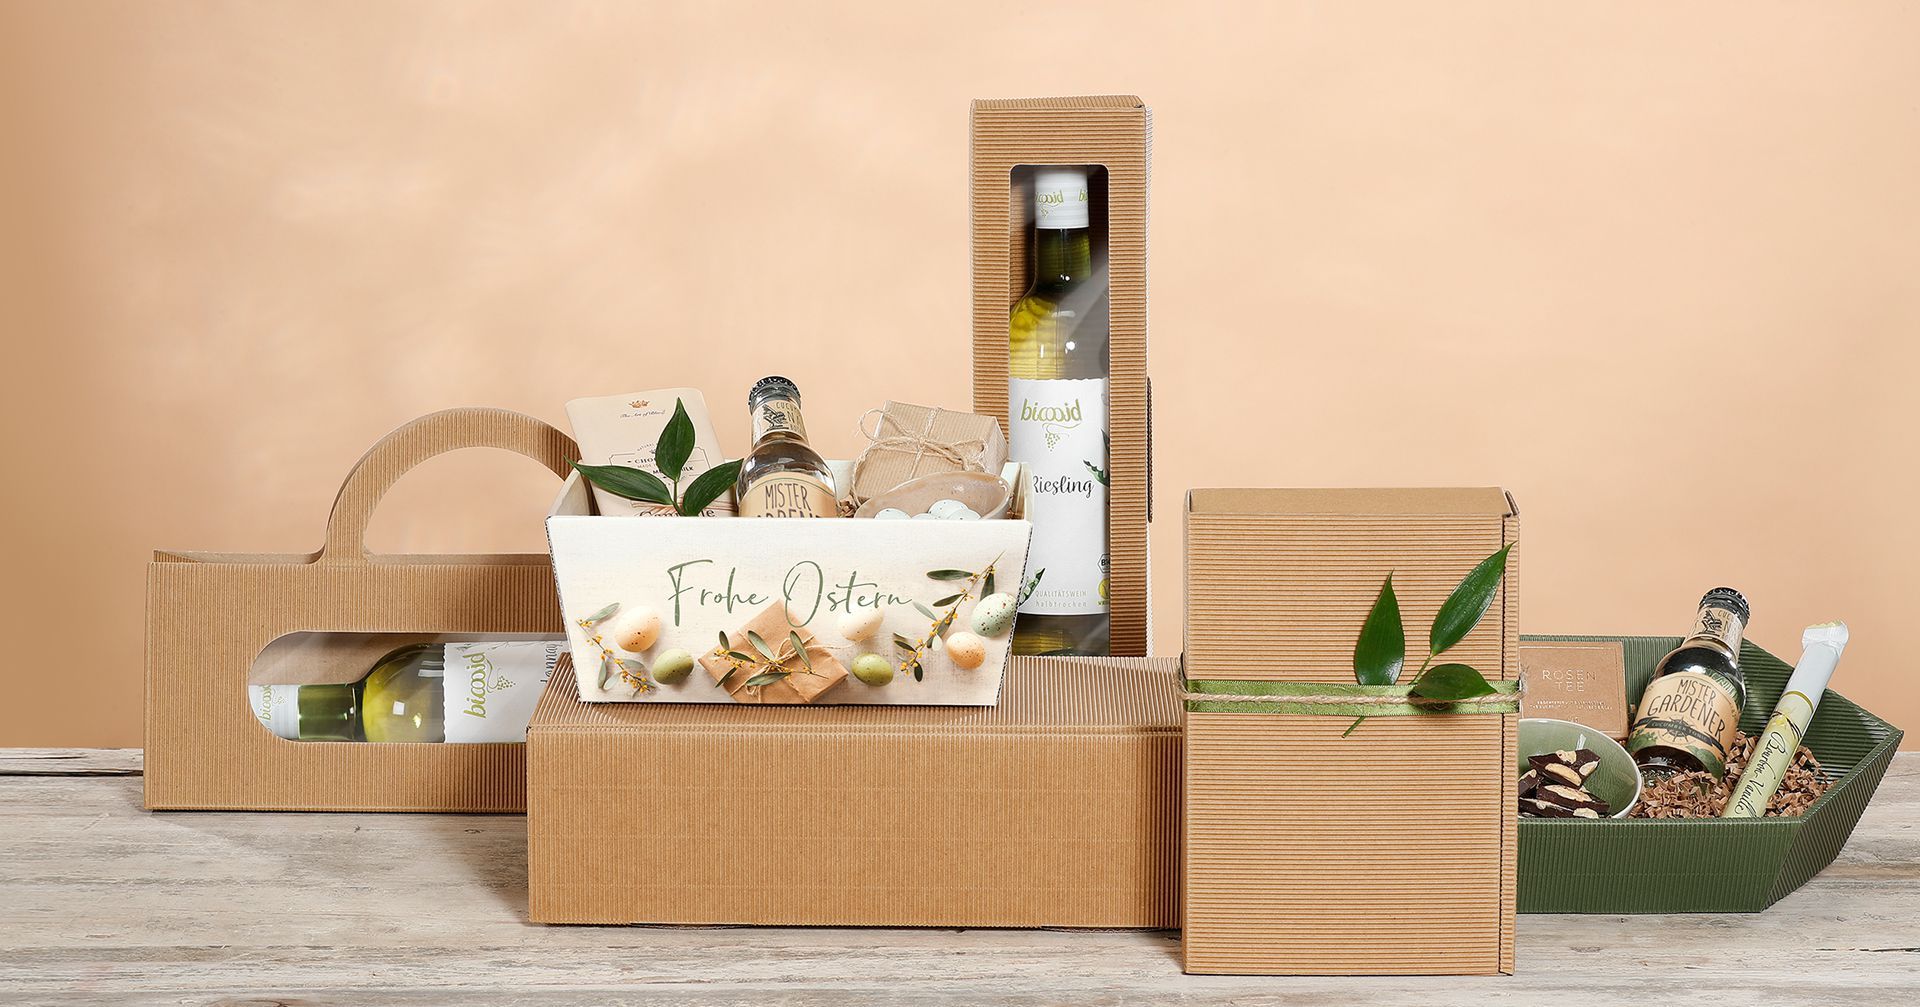 Gift packaging, natural single-face board in various shapes